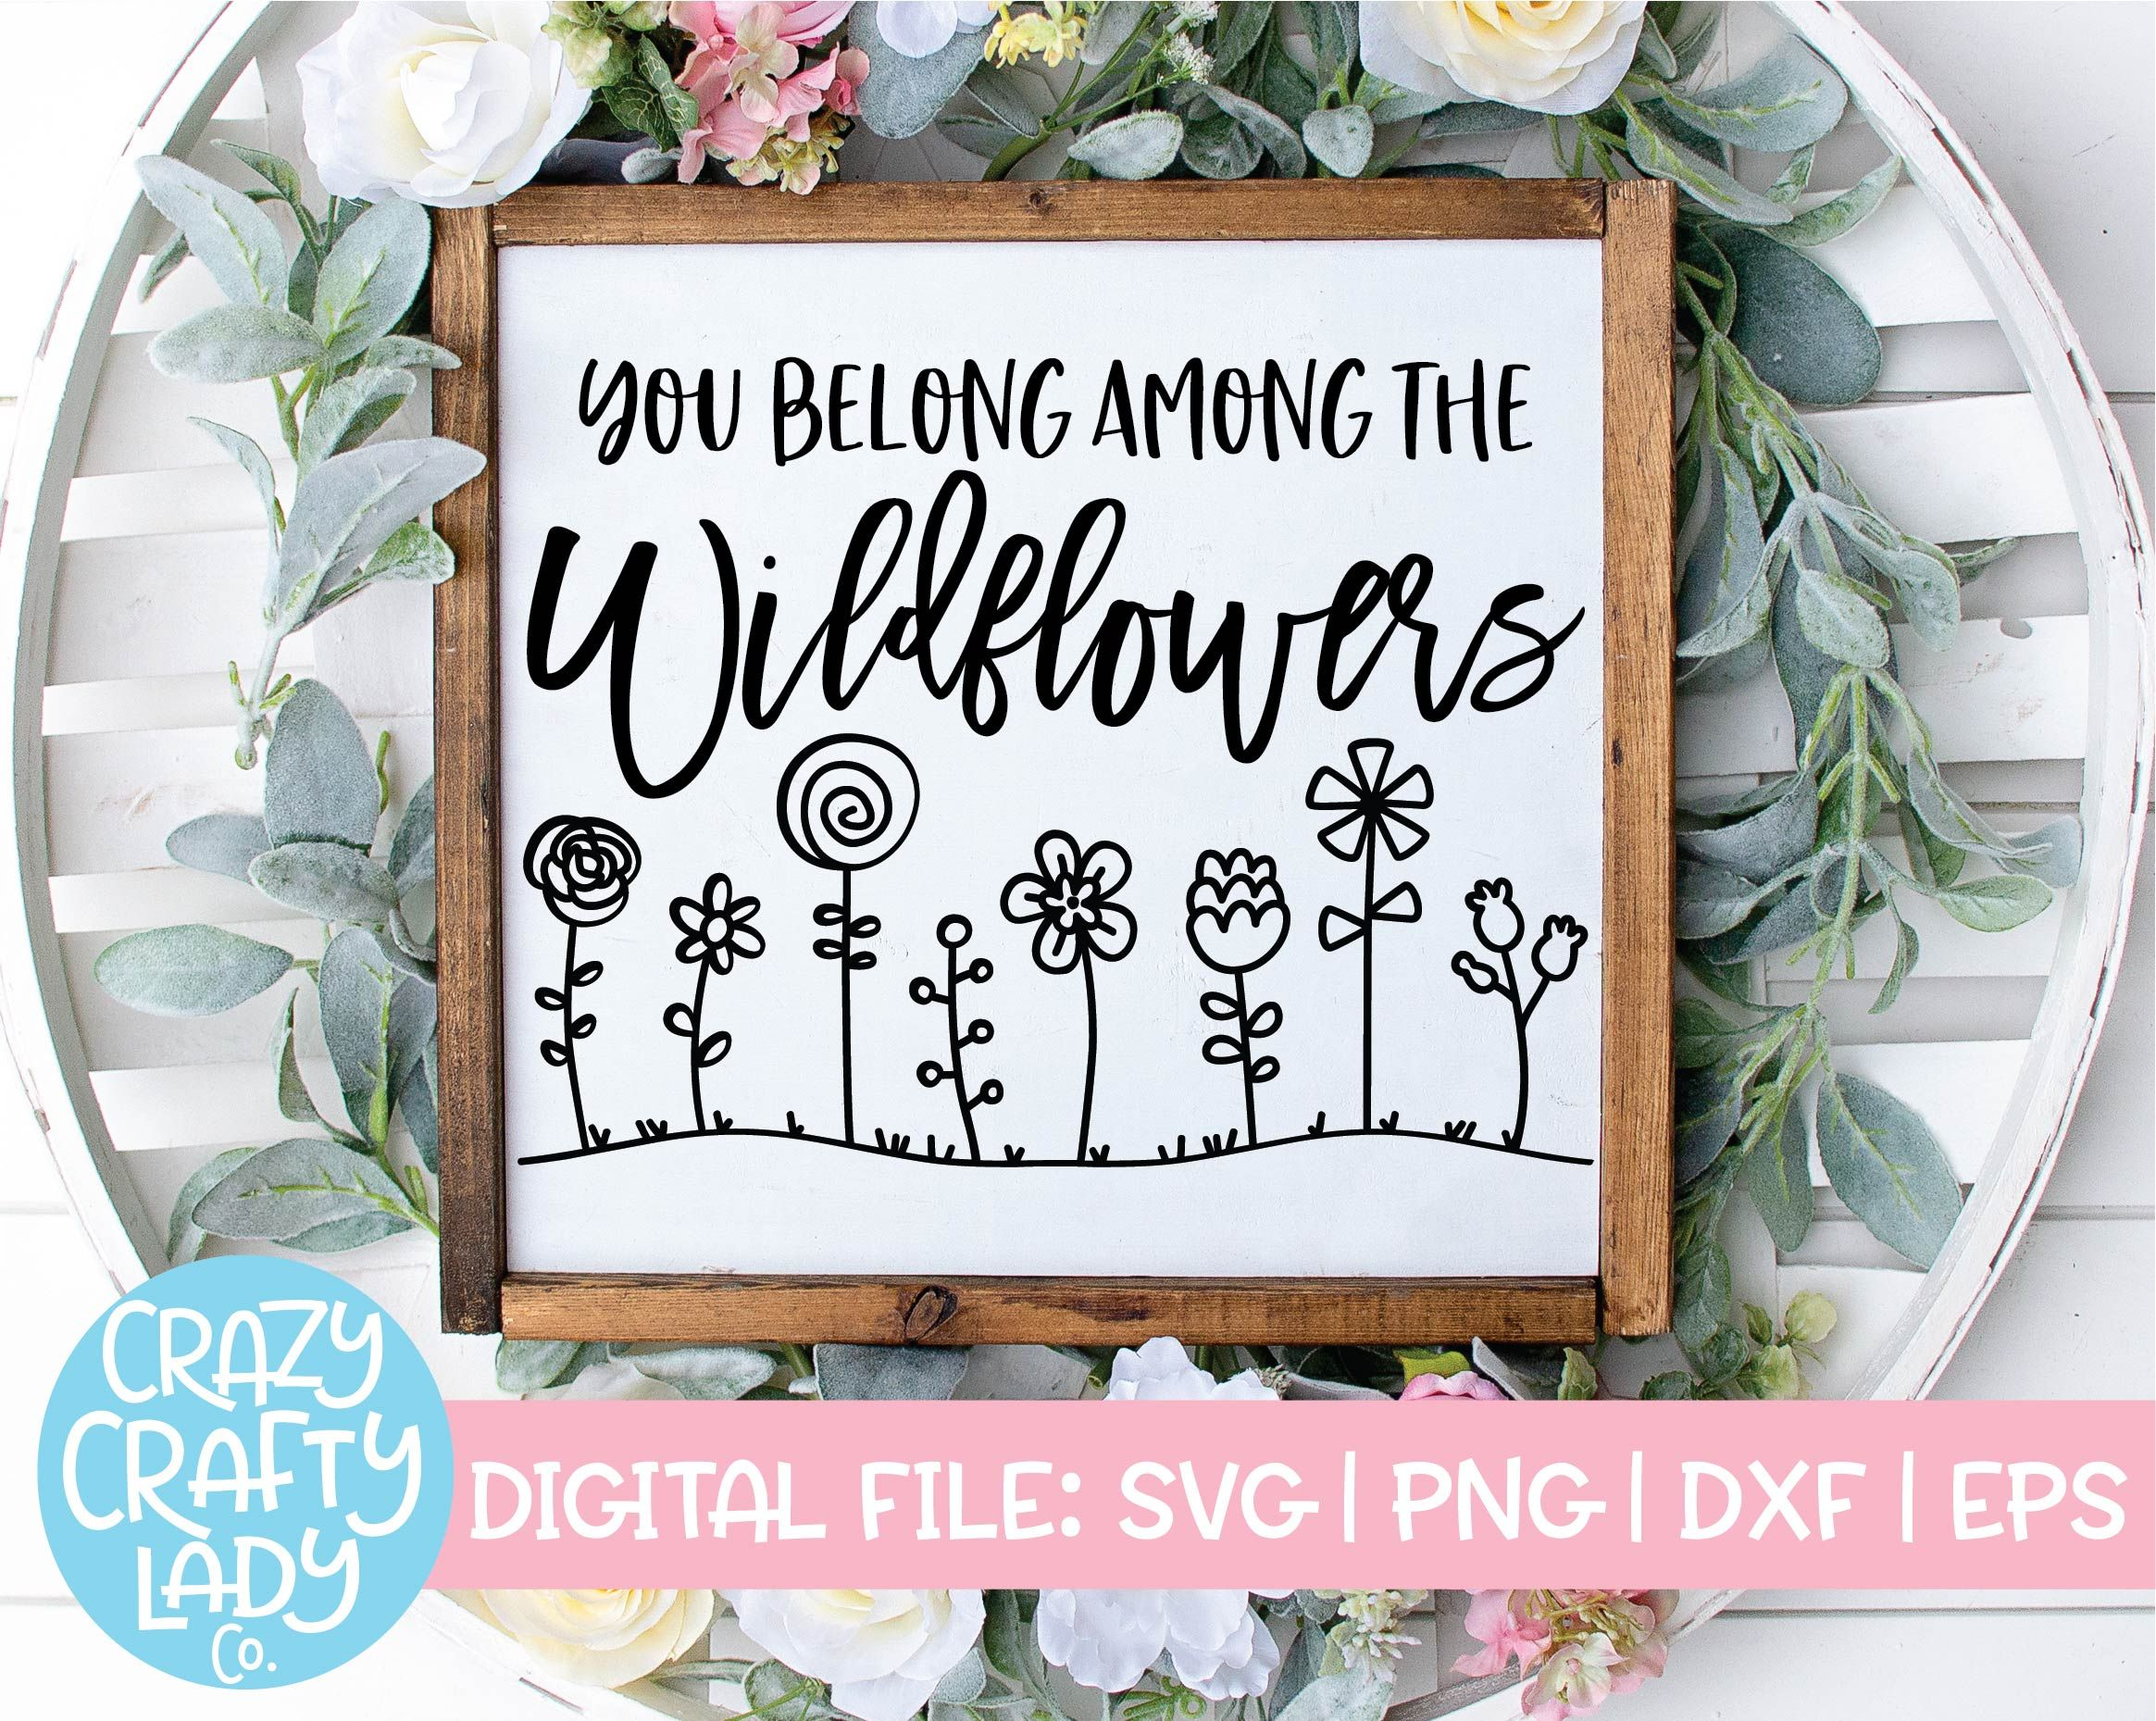 Pin on DXF Files and SVG Designs for Silhouette and Cricut